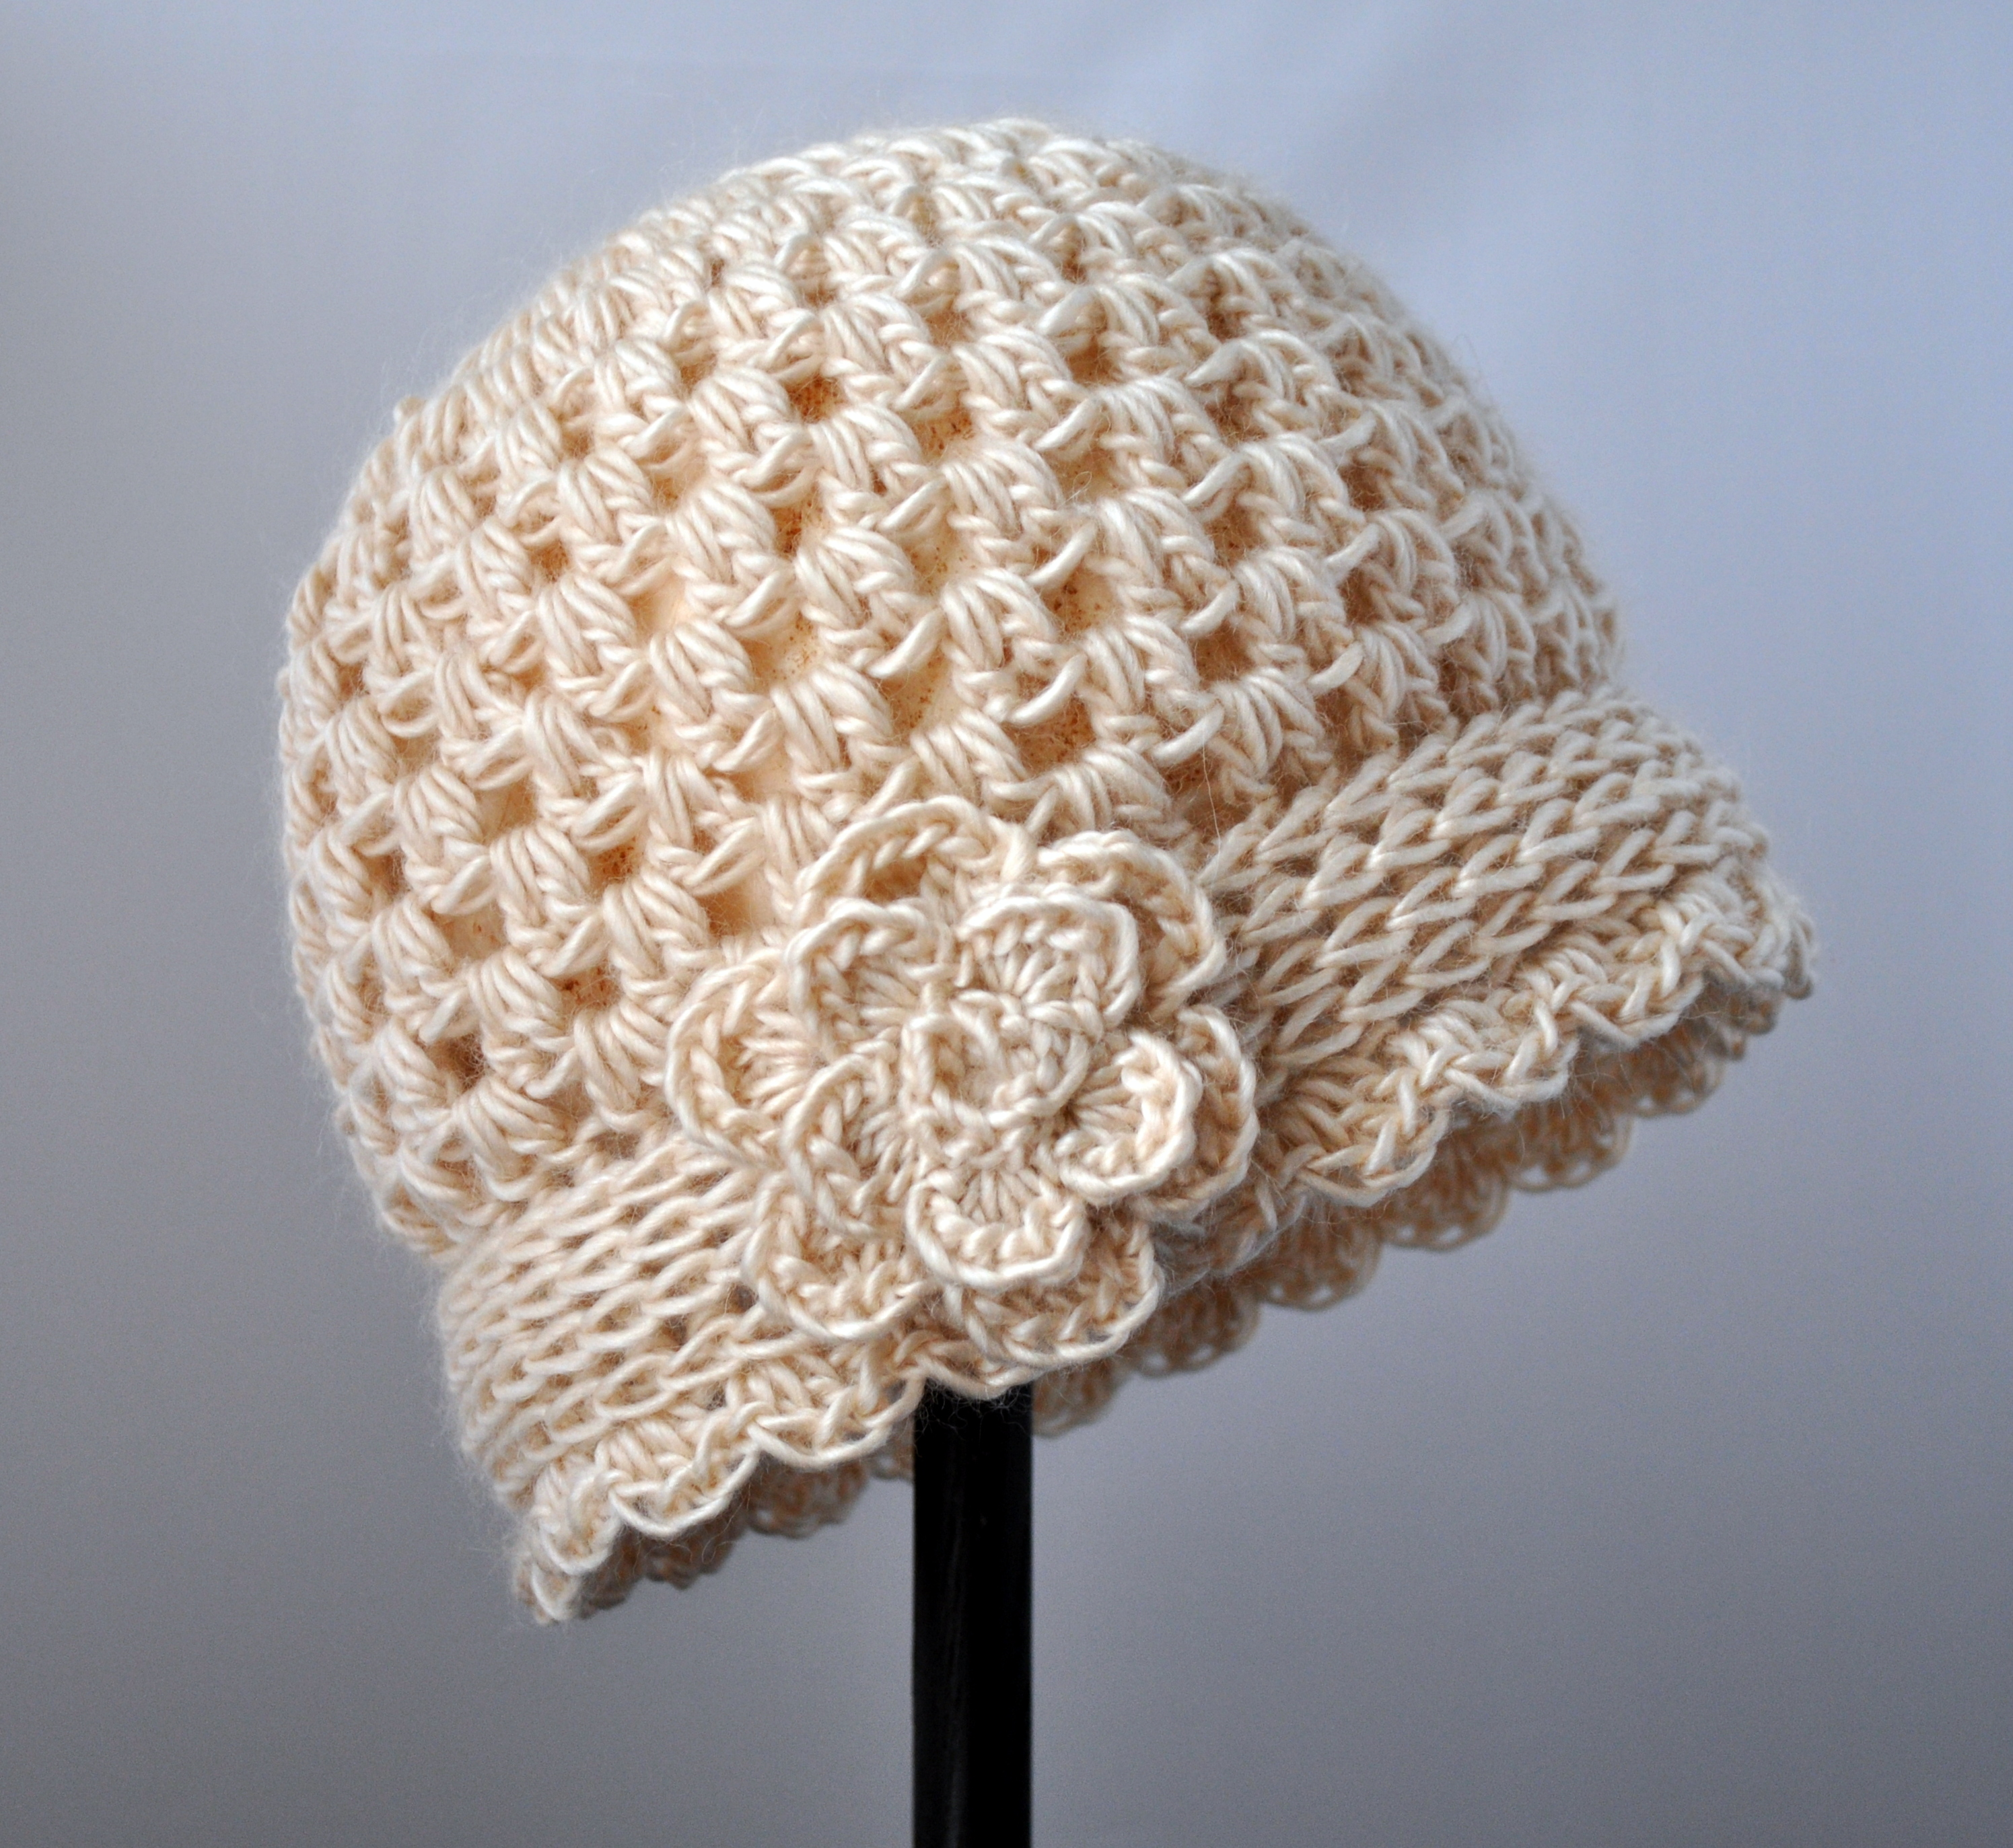 All Crochet Free Patterns : Crochet Patterns Classy Crochet